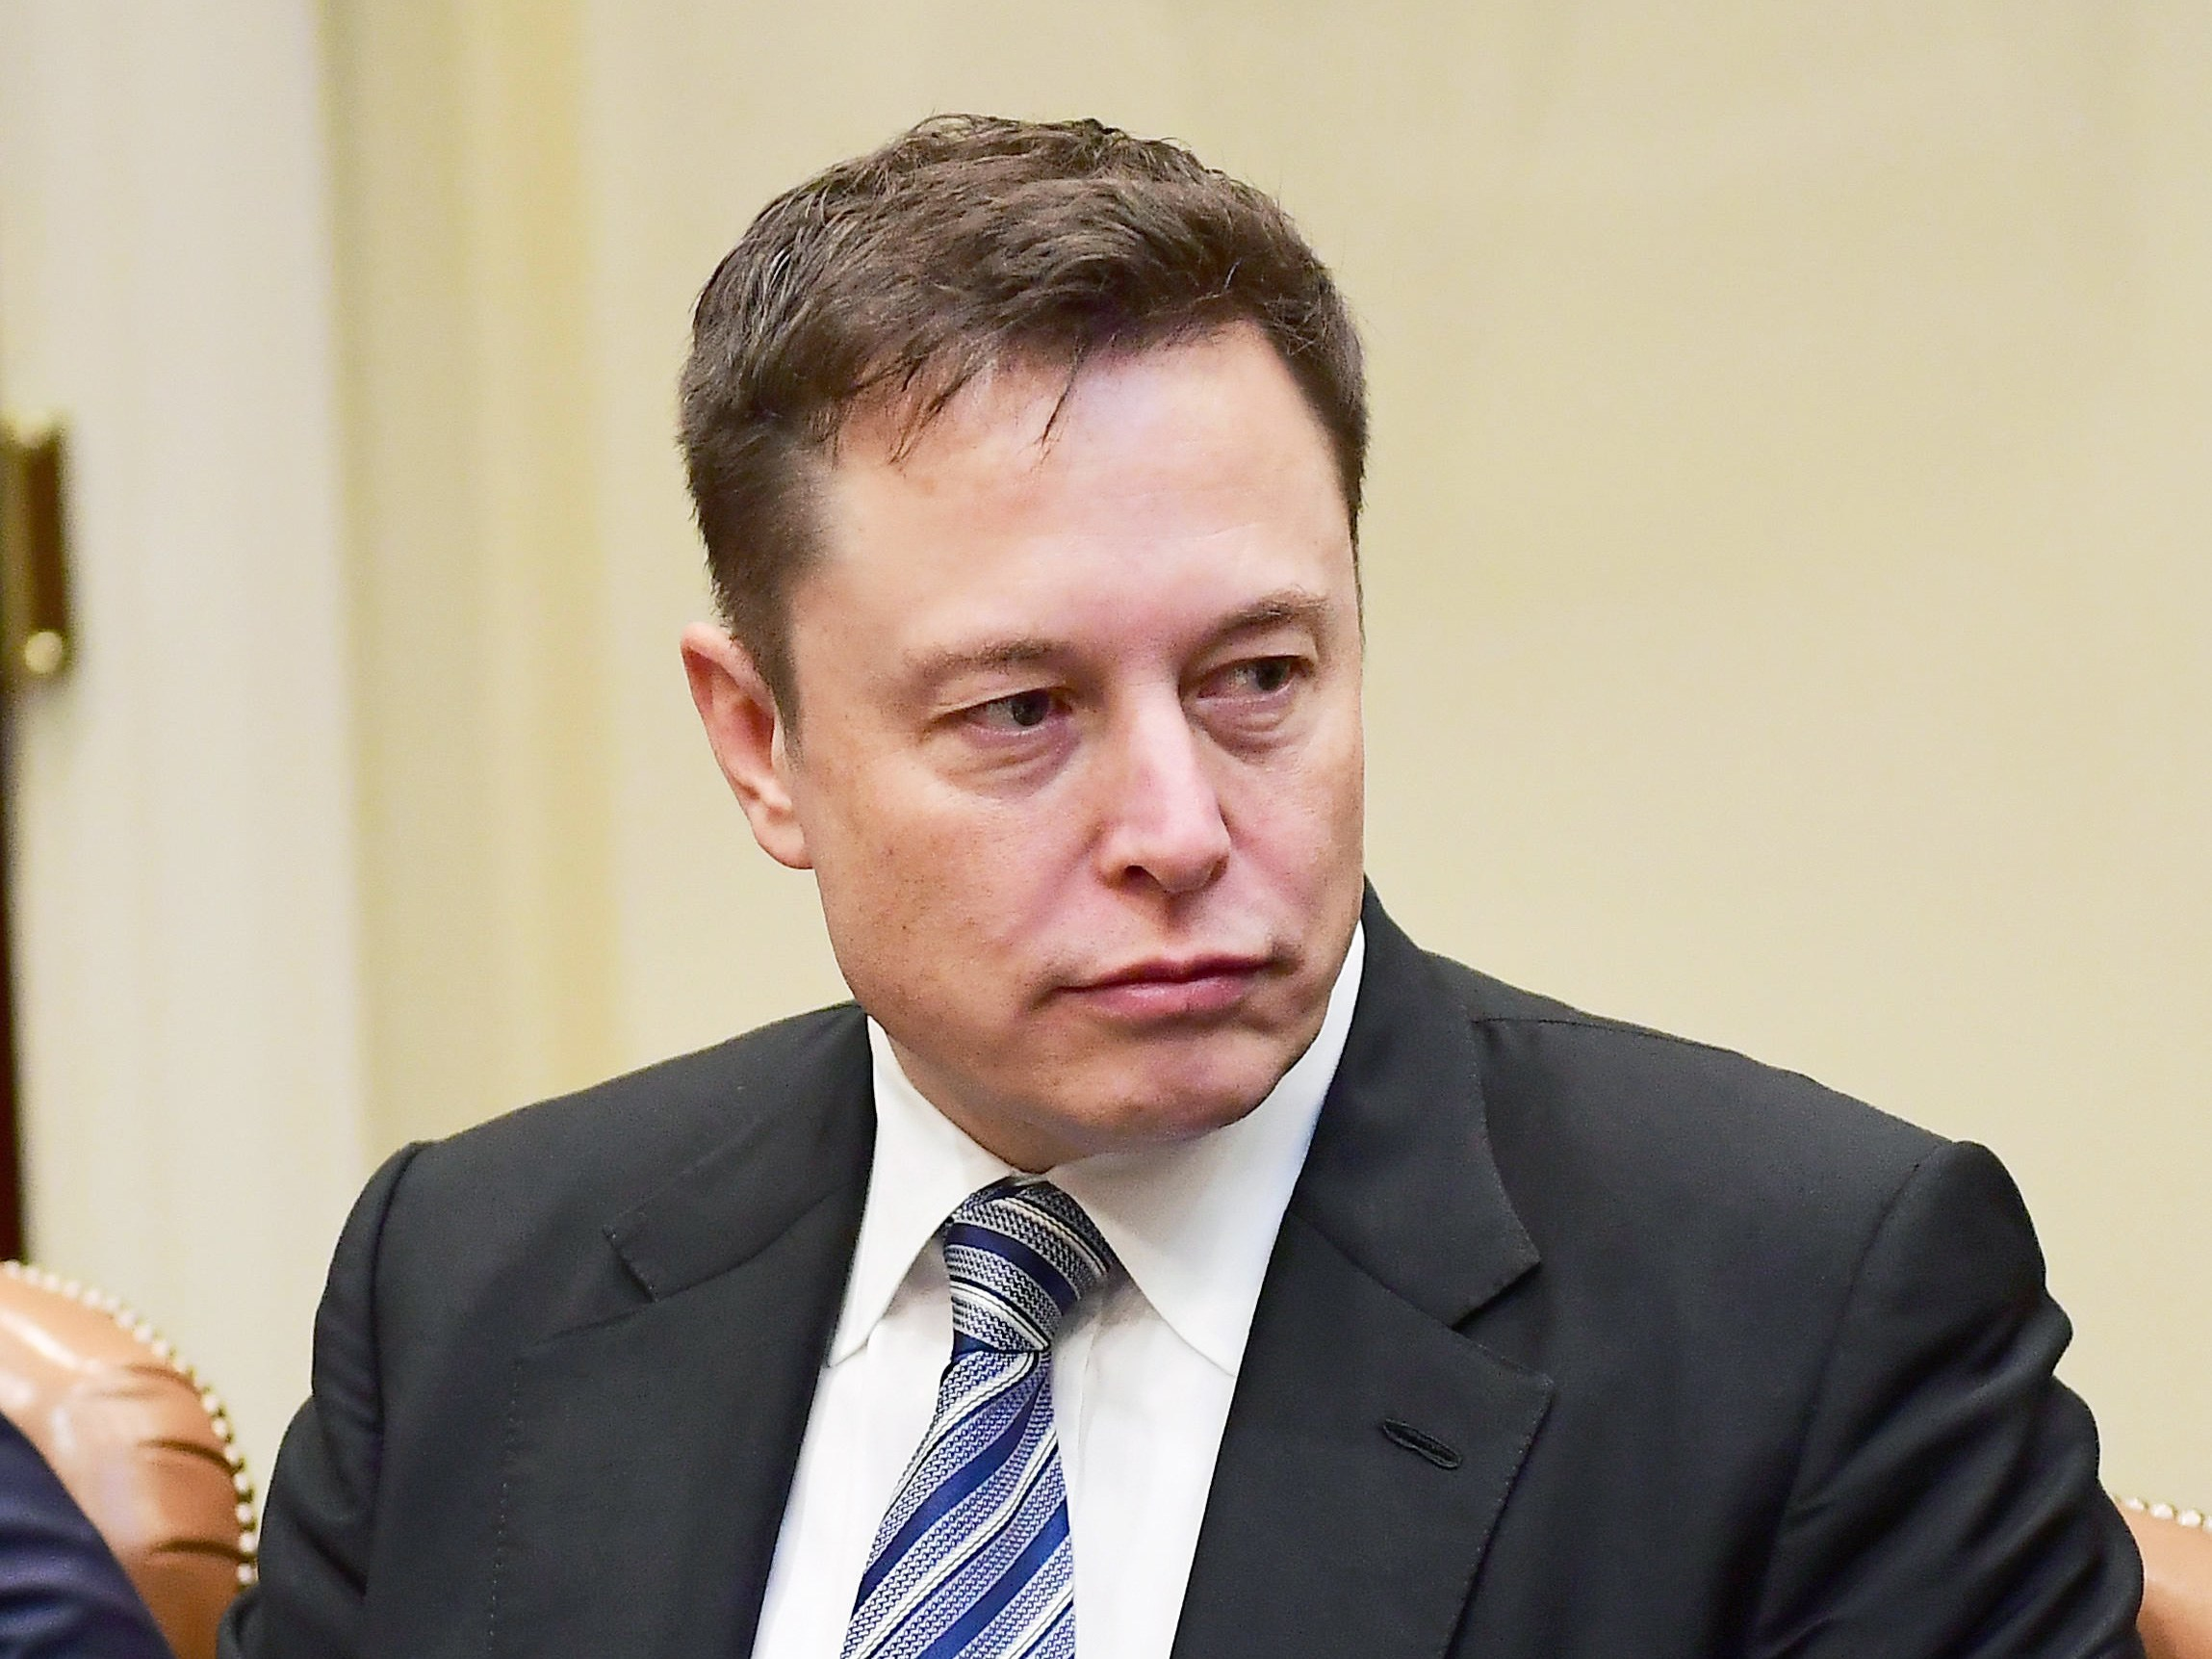 Elon Musk agrees to Step down as Chairman of the board